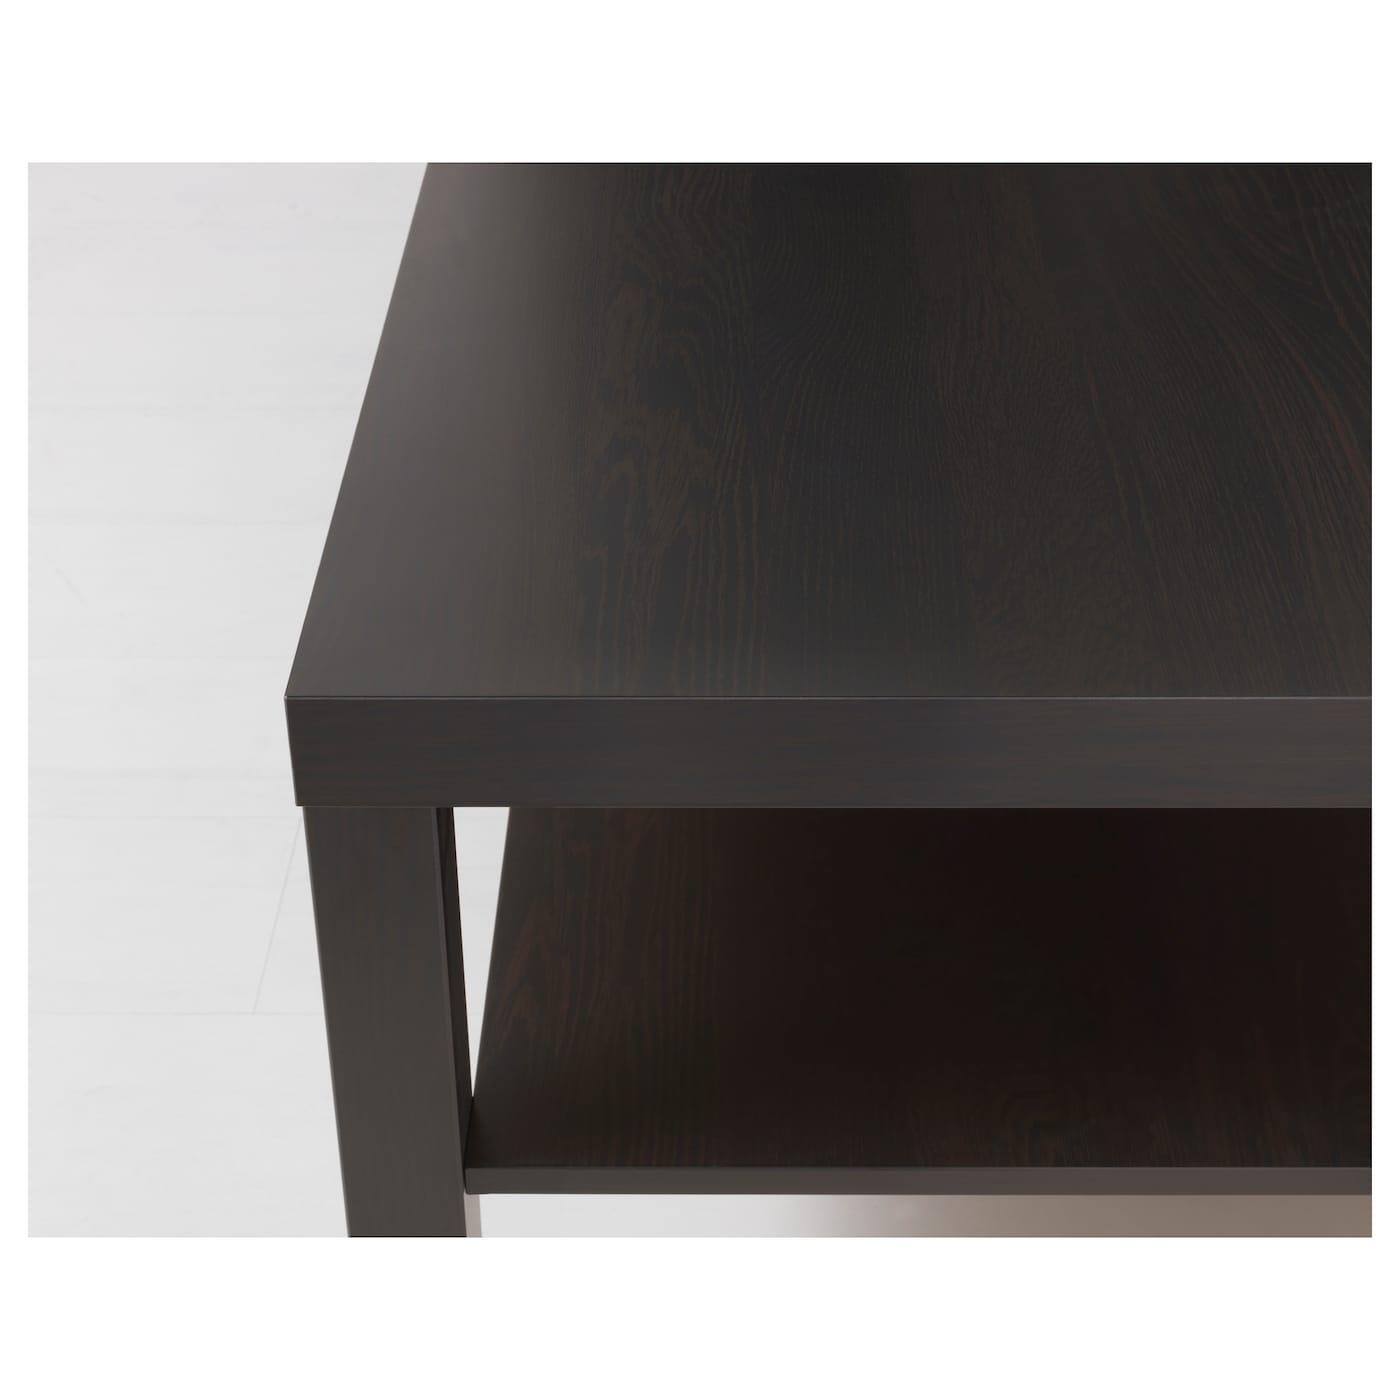 Http Www Ikea Com Gb En Products Tables Coffee Side Tables Lack Coffee Table Black Brown Art 00104291